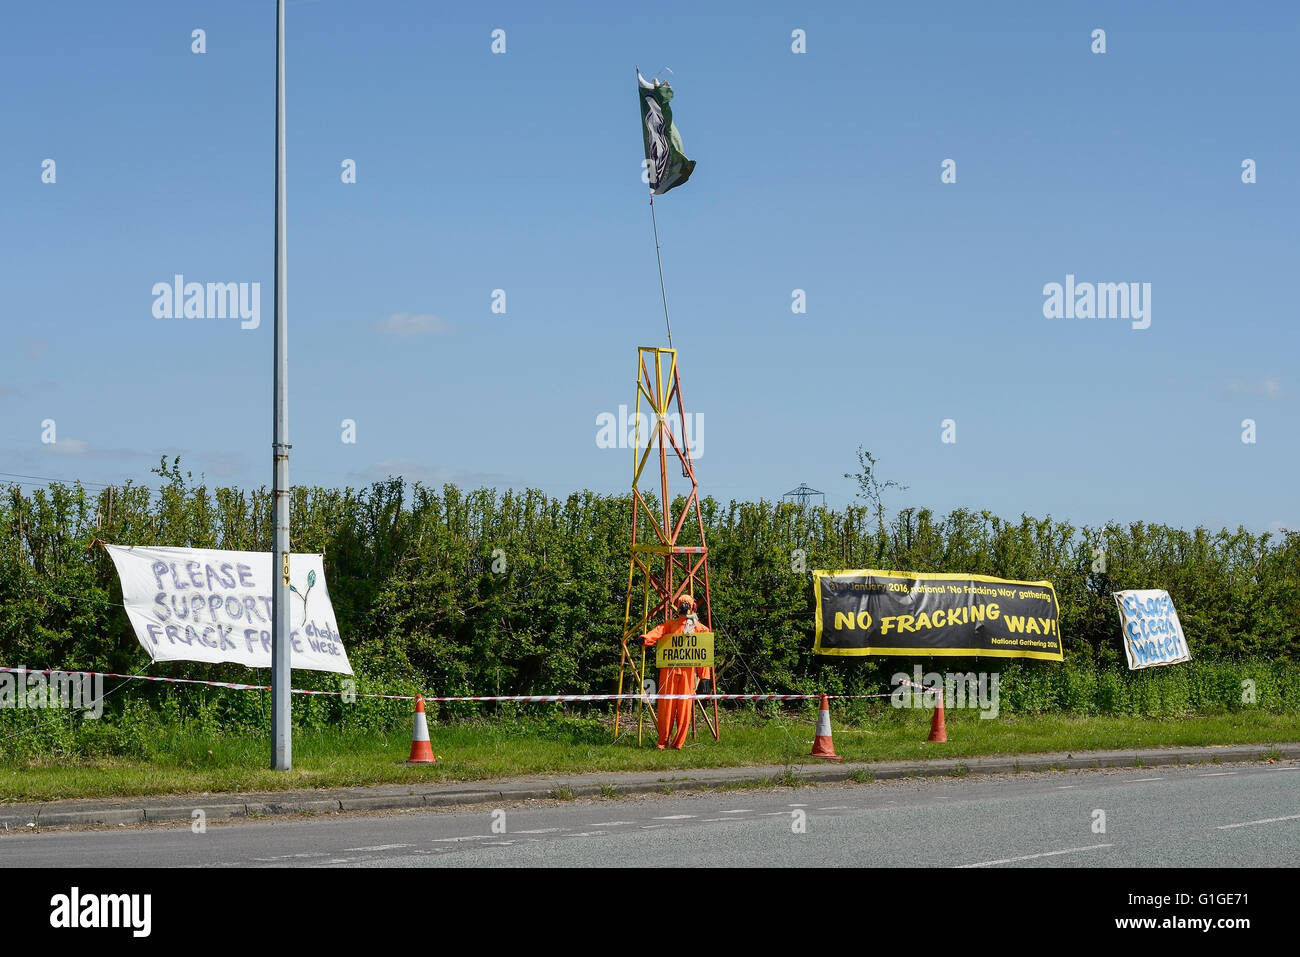 Banners protesting about fracking in Cheshire UK - Stock Image